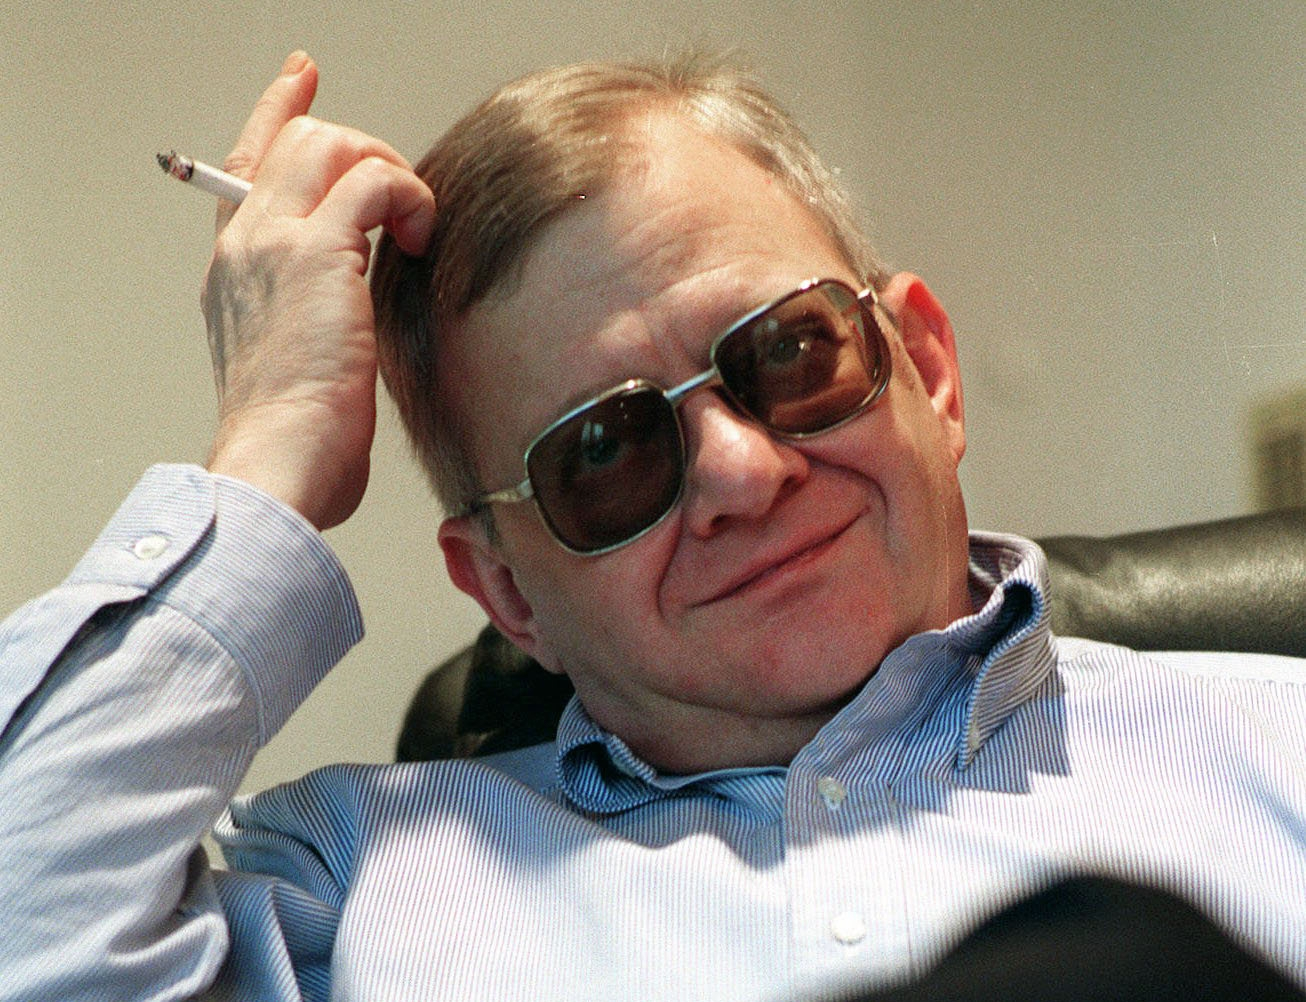 """Tom Clancy, whose debut novel, """"The Hunt for Red October,"""" was smash hit in 1984, became a phenomenon with 17 No. 1 best-sellers, movie adaptations and video games."""